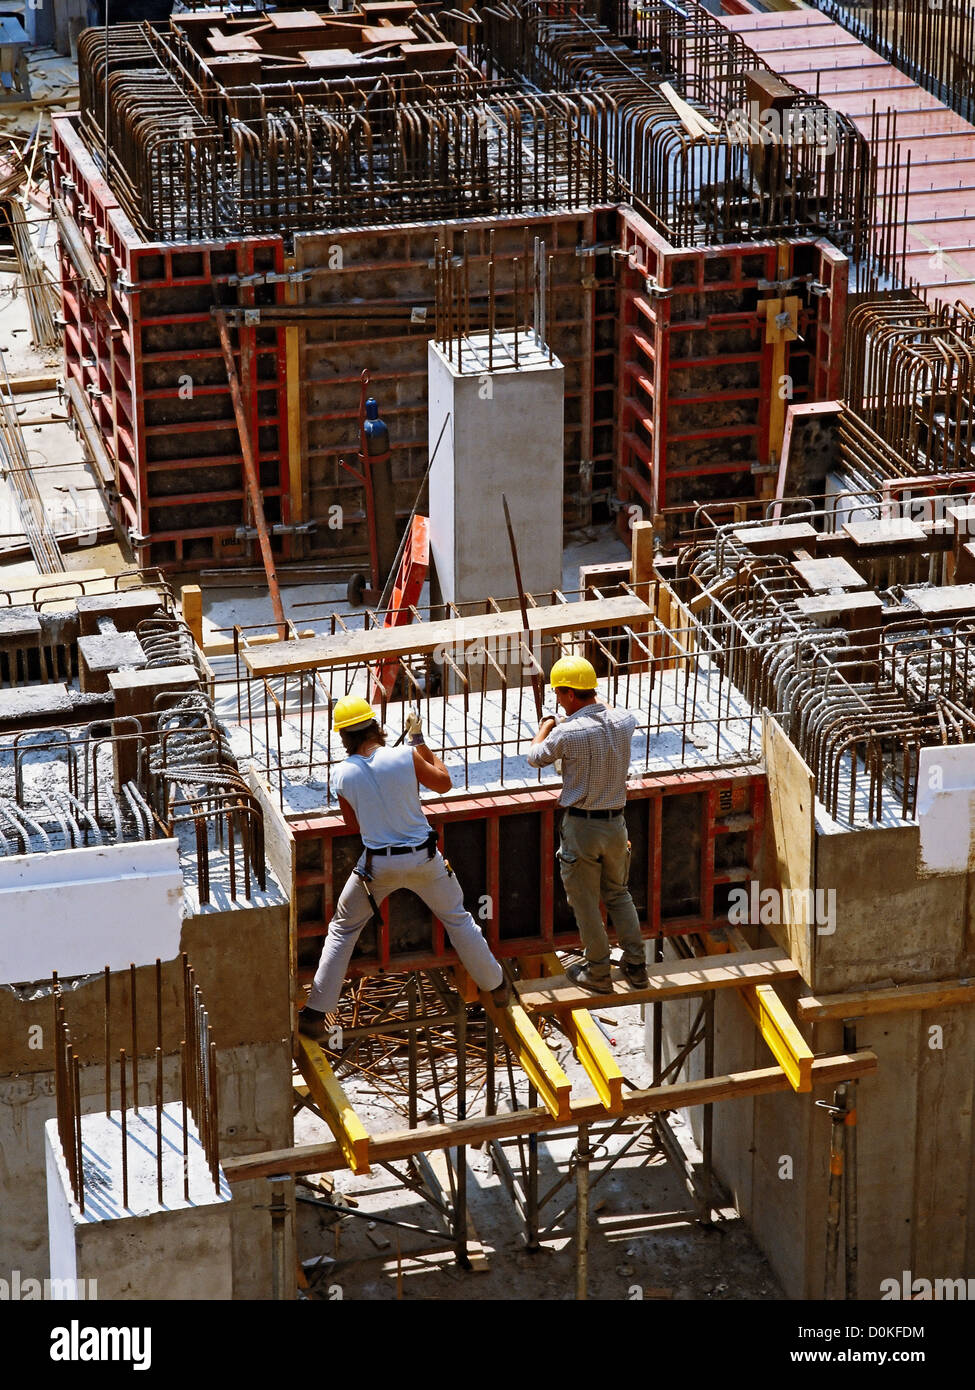 Workers building a steel-reinforced concrete structure. - Stock Image